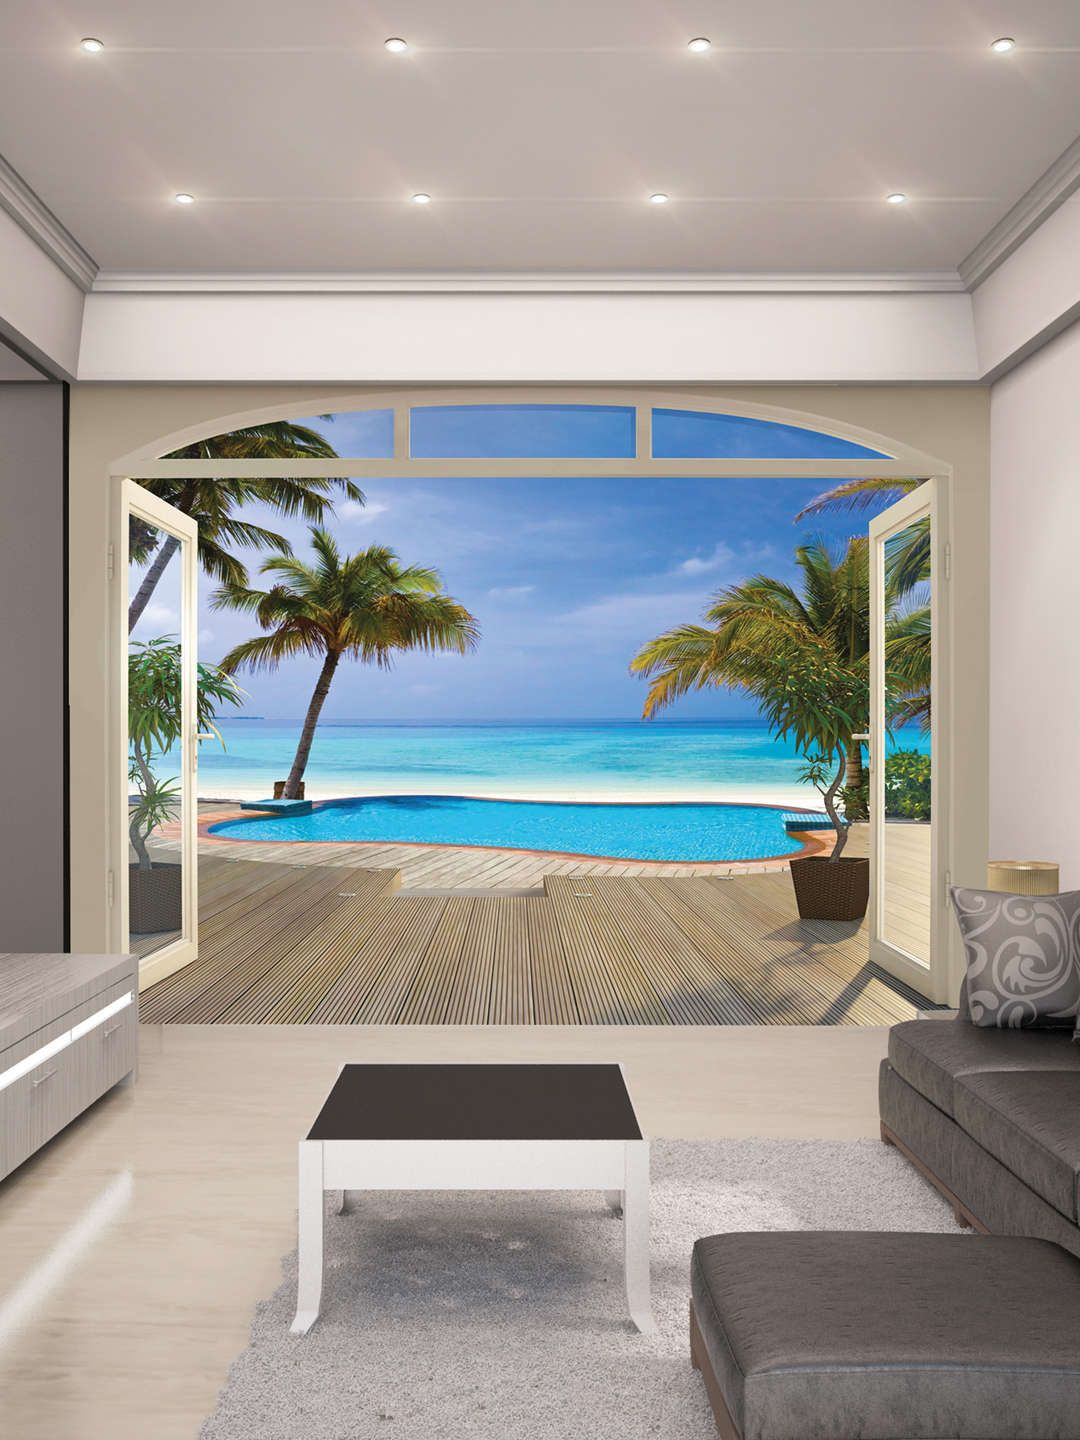 Paradise Beach Wall Mural Home and garden in 2019